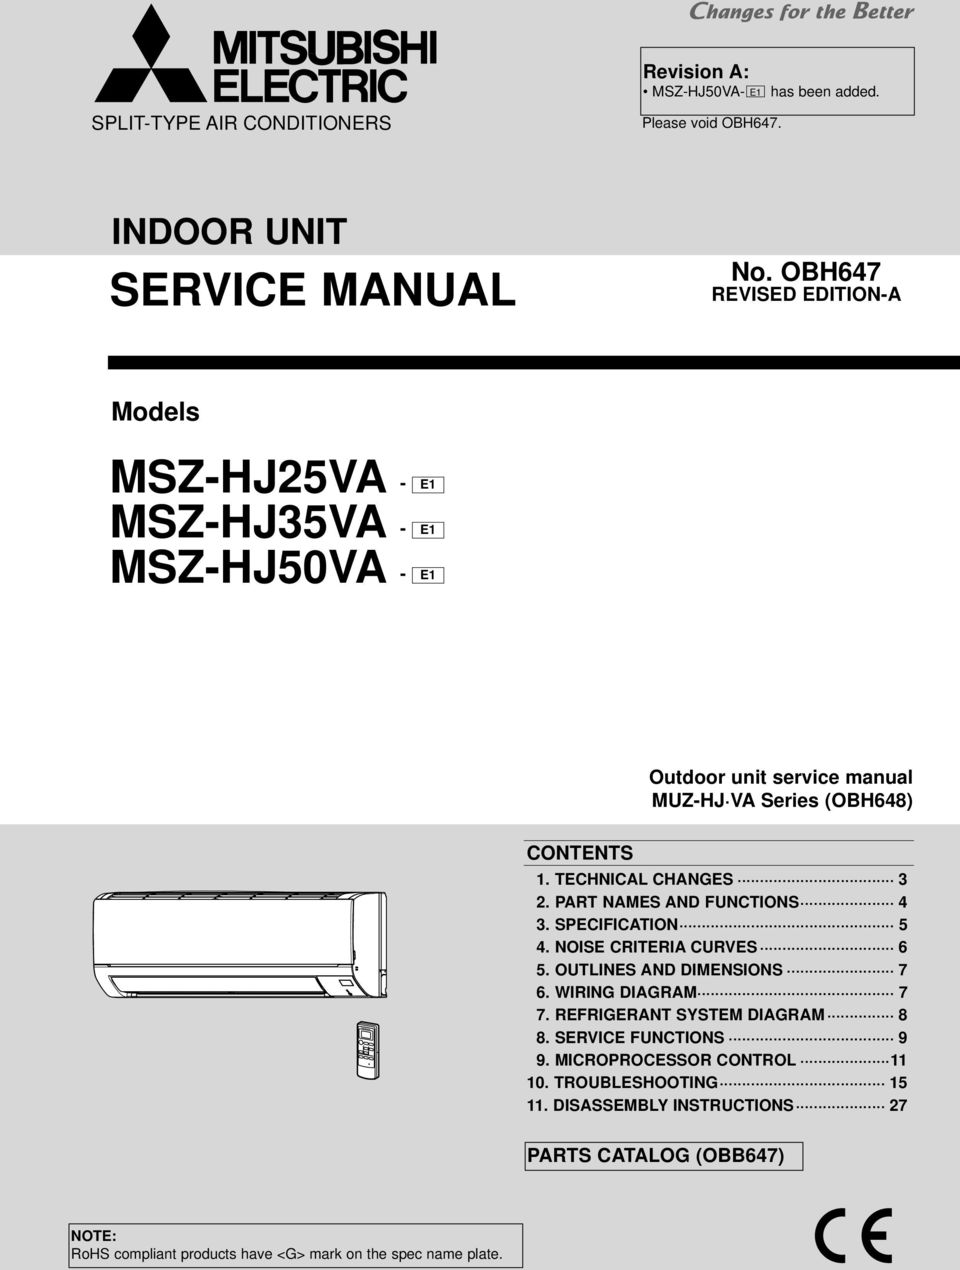 service manual msz hj25va msz hj35va msz hj50va indoor unit no rh docplayer net